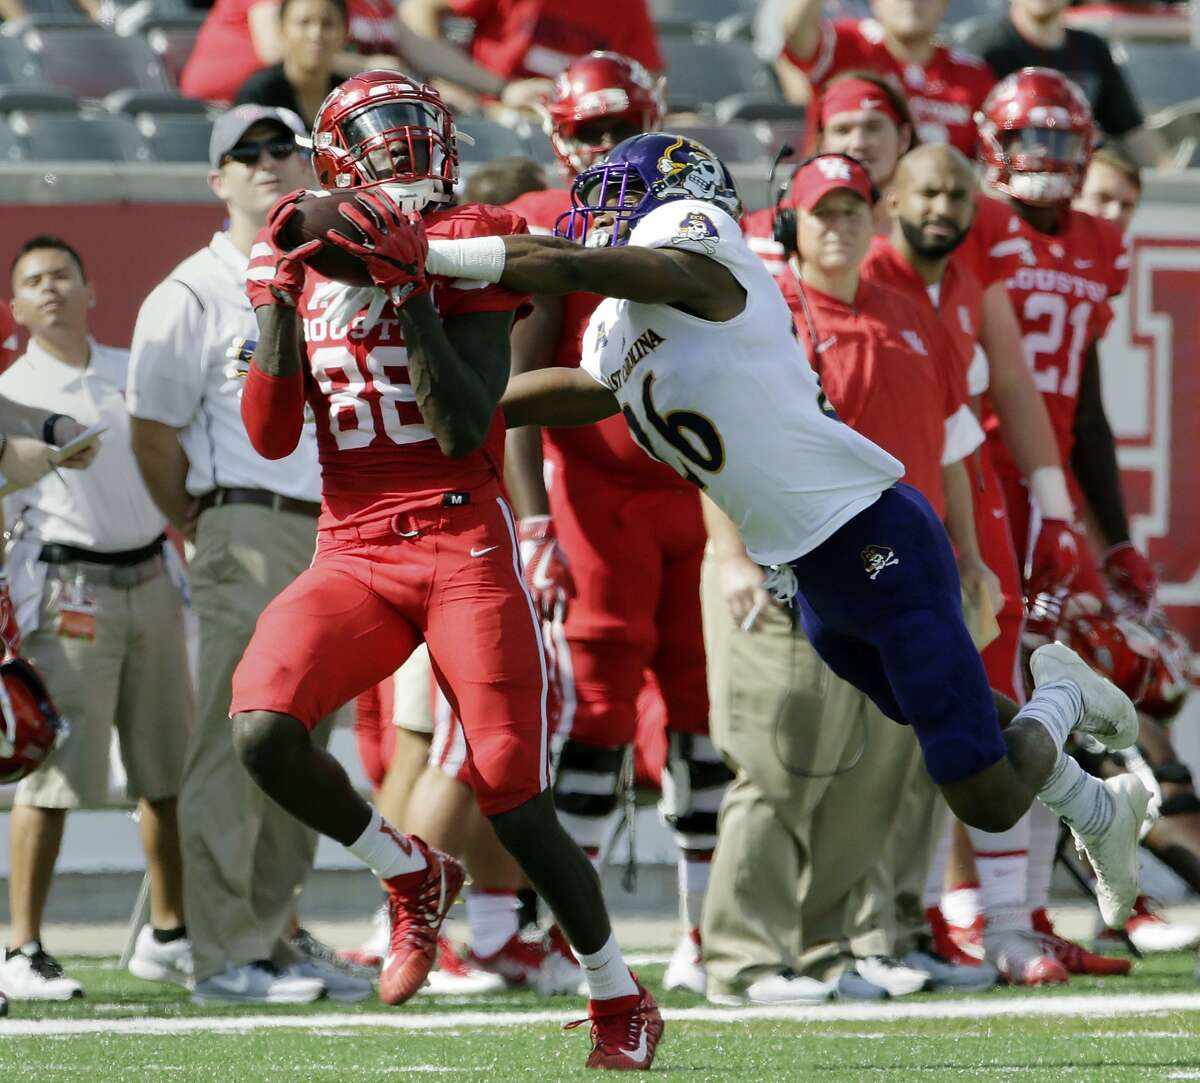 Houston wide receiver Steven Dunbar (88) makes the reception despite the pressure by East Carolina defensive back Colby Gore (26) during the first half of an NCAA college football game Saturday, Nov. 4, 2017, in Houston. (Michael Wyke/Houston Chronicle via AP)